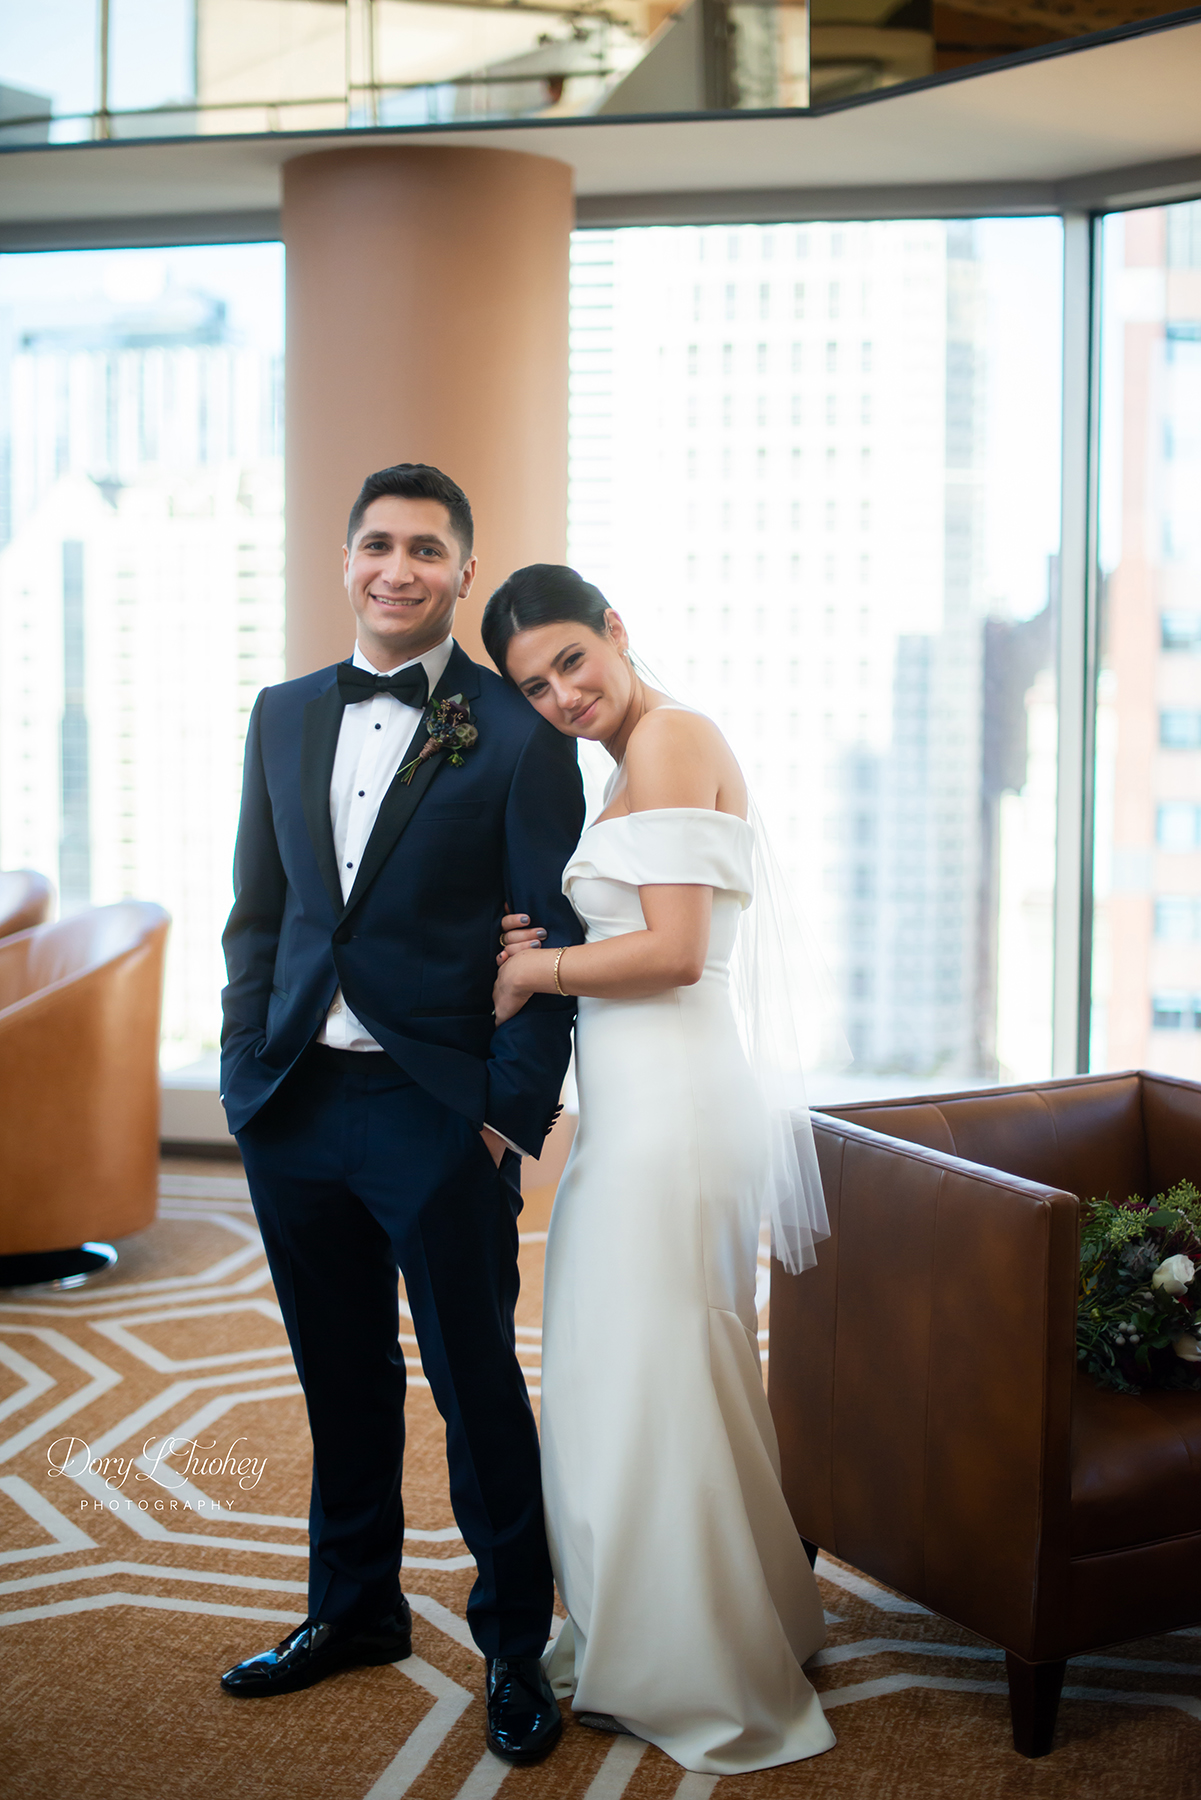 Dory_chicago_wedding_navy_pier_boat_cruise_skyline_sunset_jewish_bride_groom_12.jpg